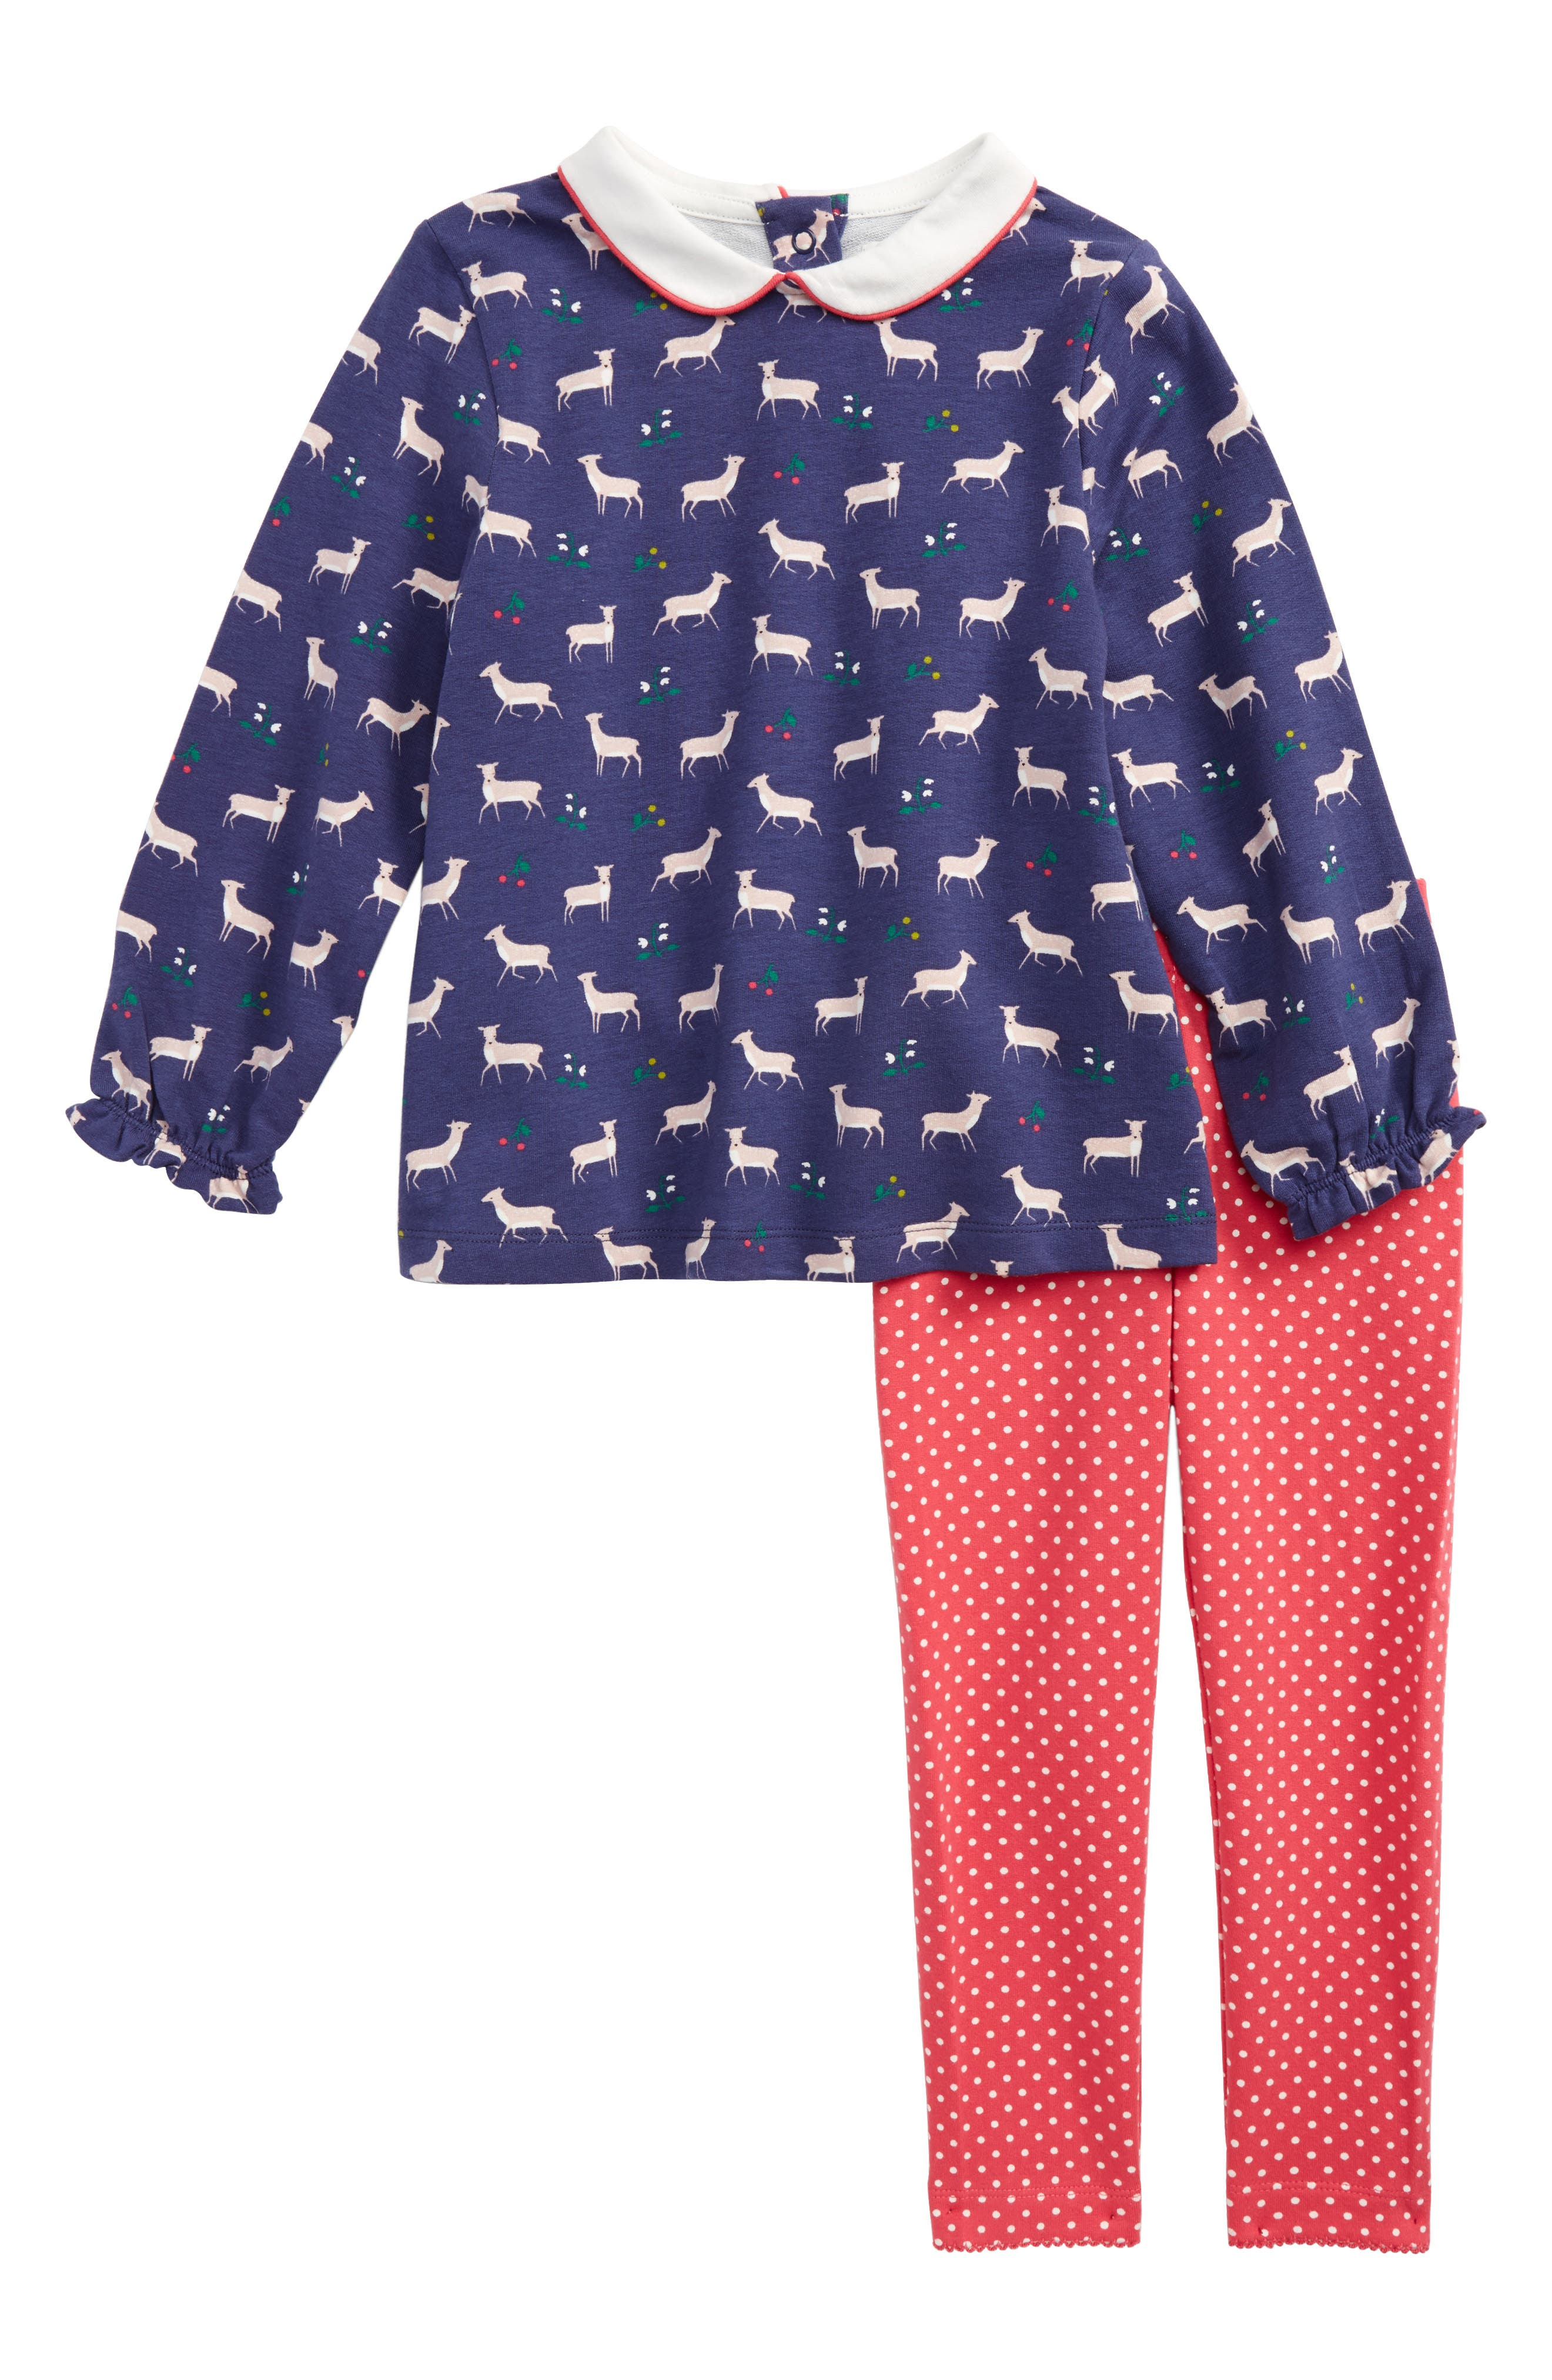 Pretty Winter Tunic & Leggings Set,                         Main,                         color, Naval Blue Baby Fawn